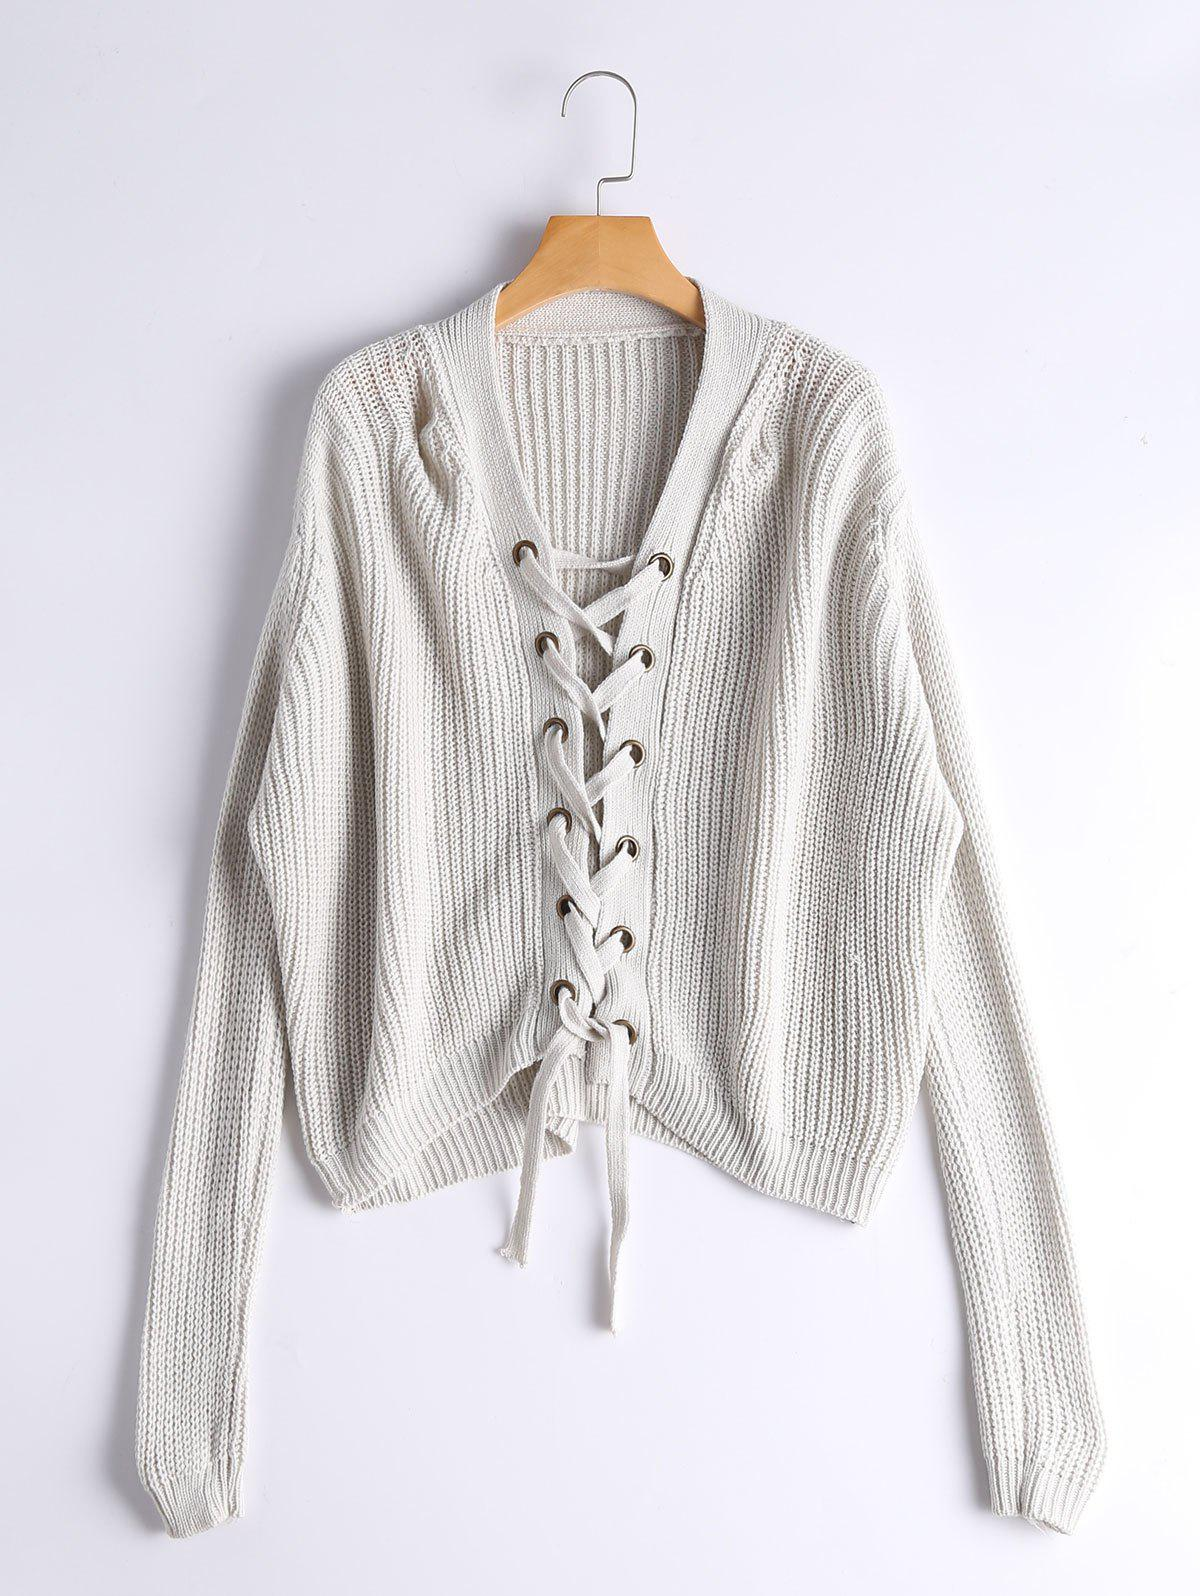 Ribbed Lace Up Chunky SweaterWOMEN<br><br>Size: ONE SIZE; Color: GRAY WHITE CAMOUFLAGE; Type: Pullovers; Material: Polyester,Spandex; Sleeve Length: Full; Collar: V-Neck; Style: Fashion; Pattern Type: Solid; Season: Fall,Winter; Weight: 0.4100kg; Package Contents: 1 x Sweater;